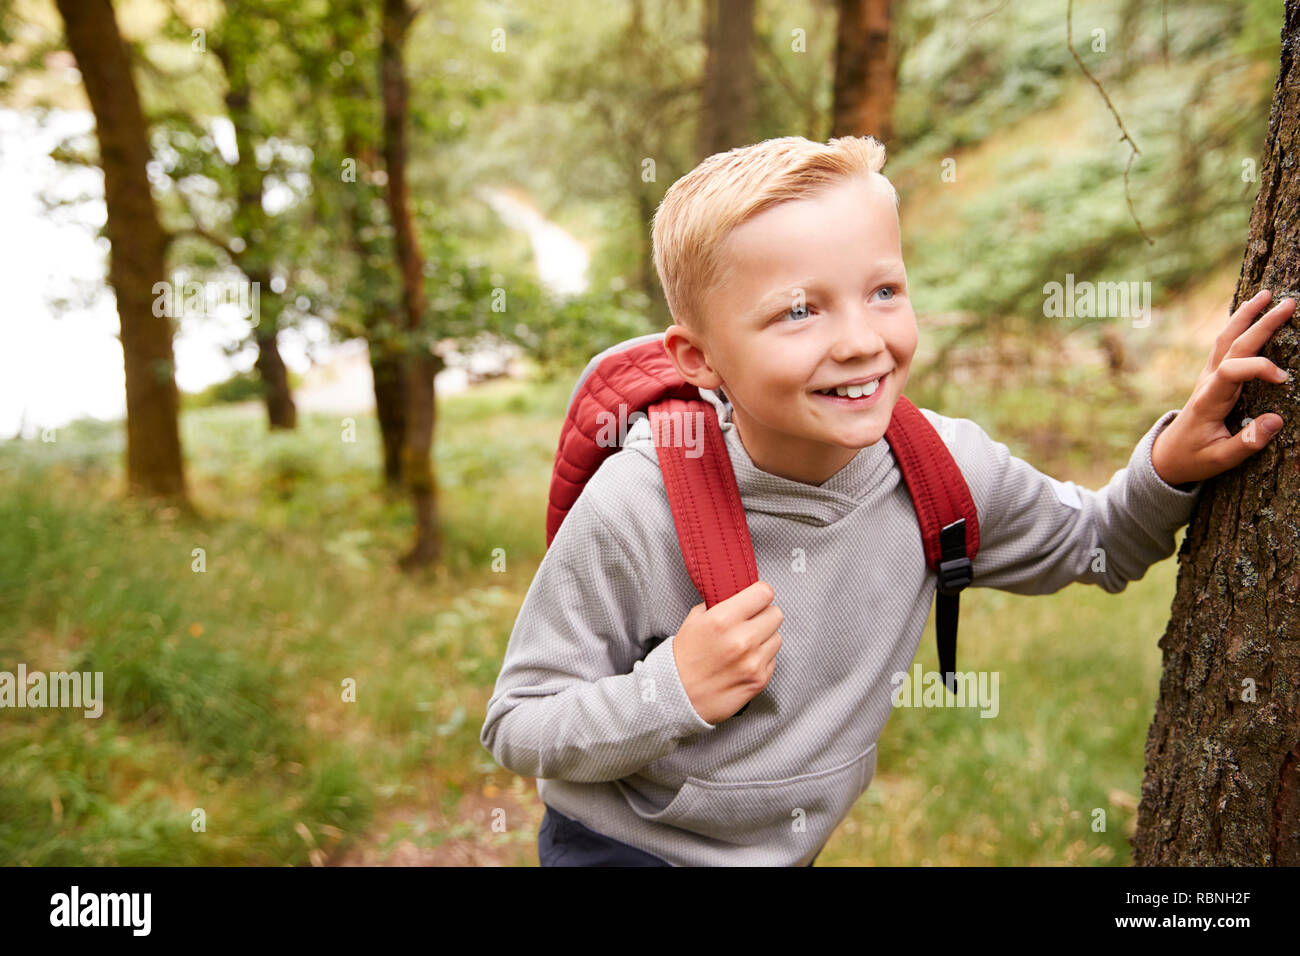 Pre-teen boy taking a break leaning on a tree during a hike in a forest, elevated view, close up - Stock Image